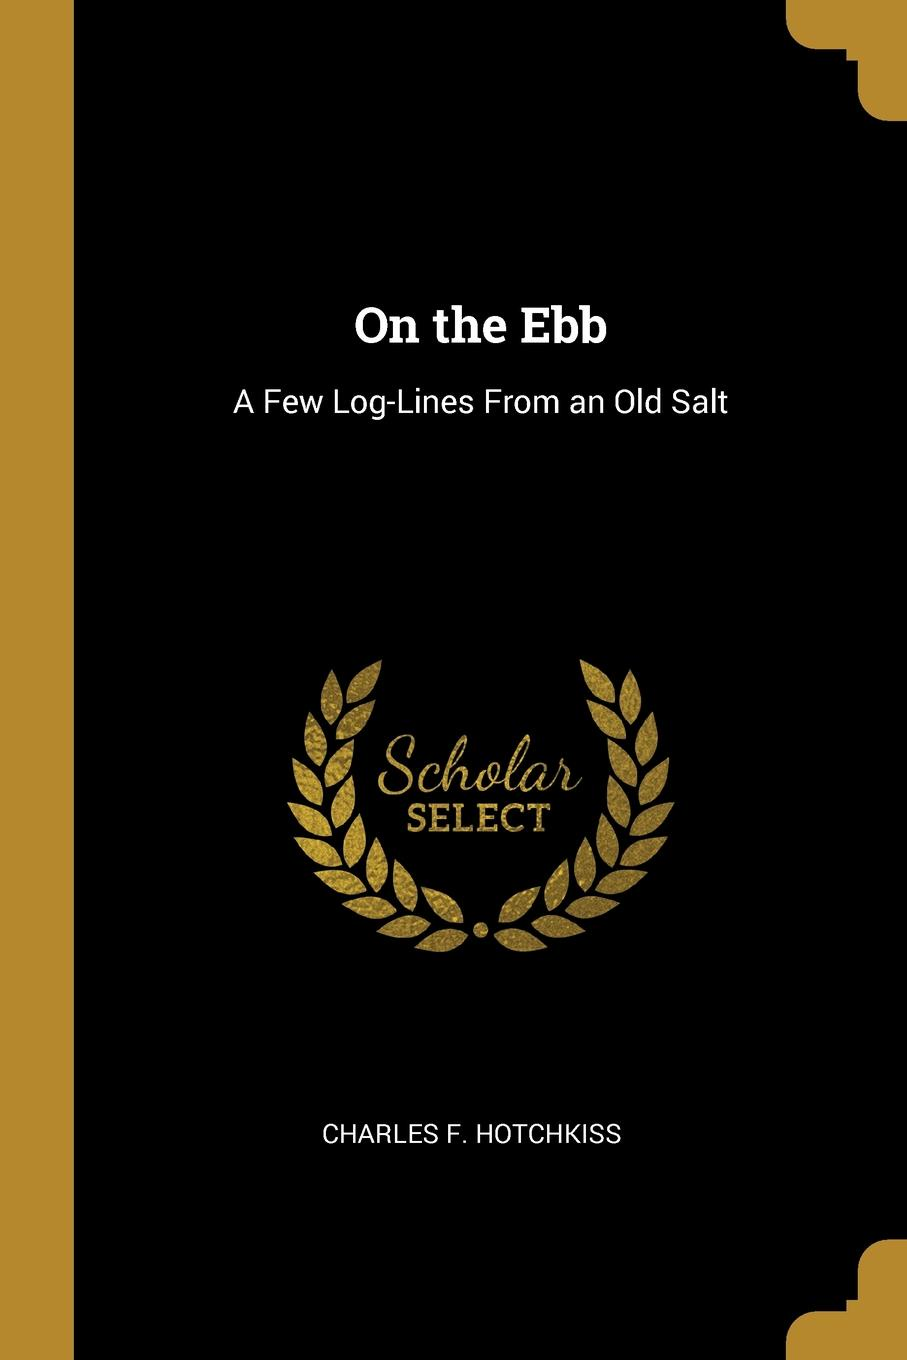 On the Ebb. A Few Log-Lines From an Old Salt